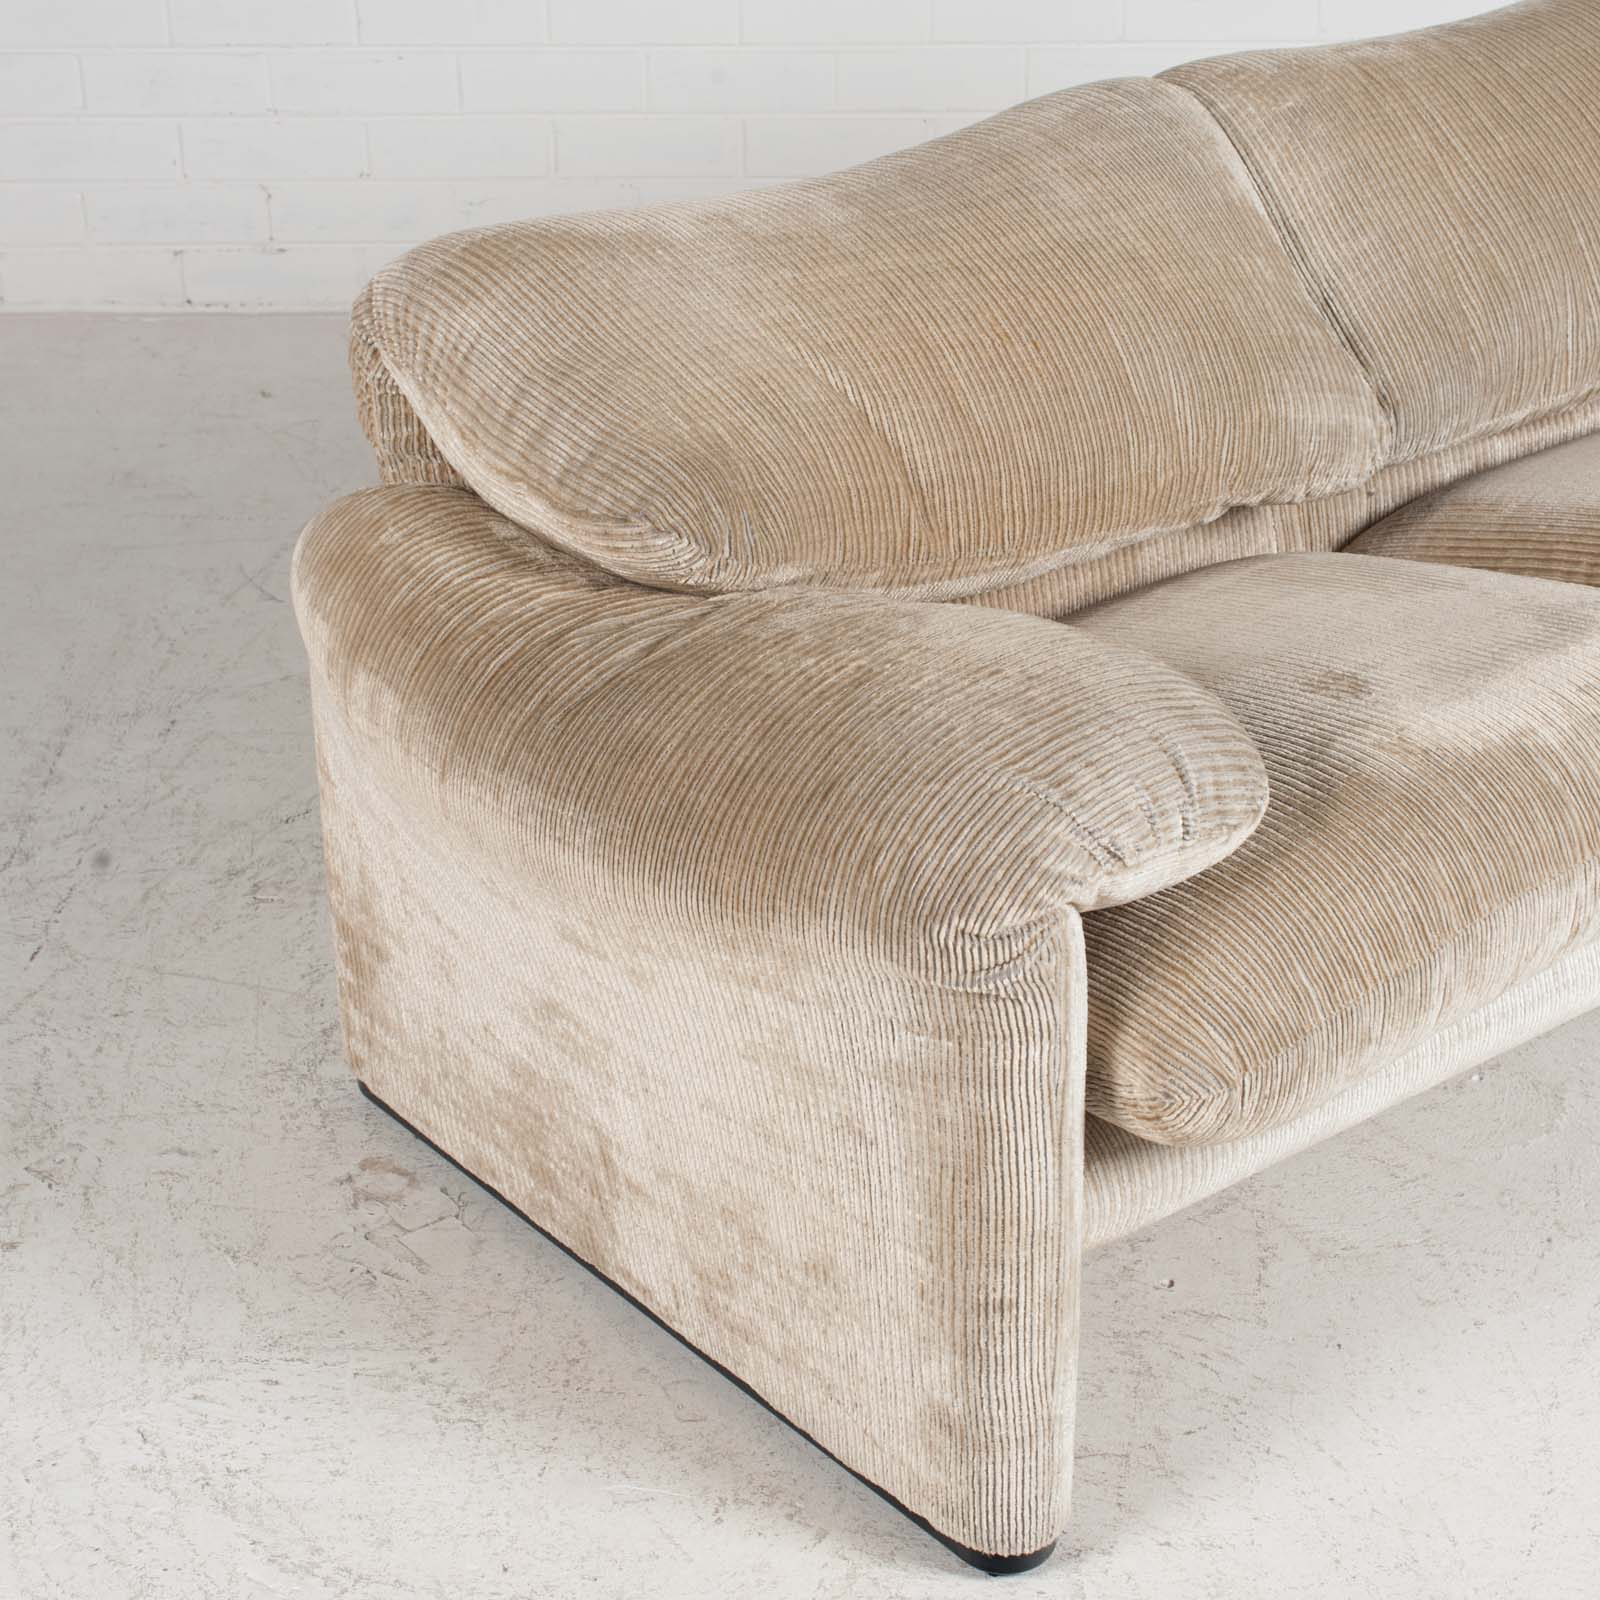 Maralunga 2 Seat Sofa By Vico Magistretti For Cassina In Original Upholstery 1970s Italy 04